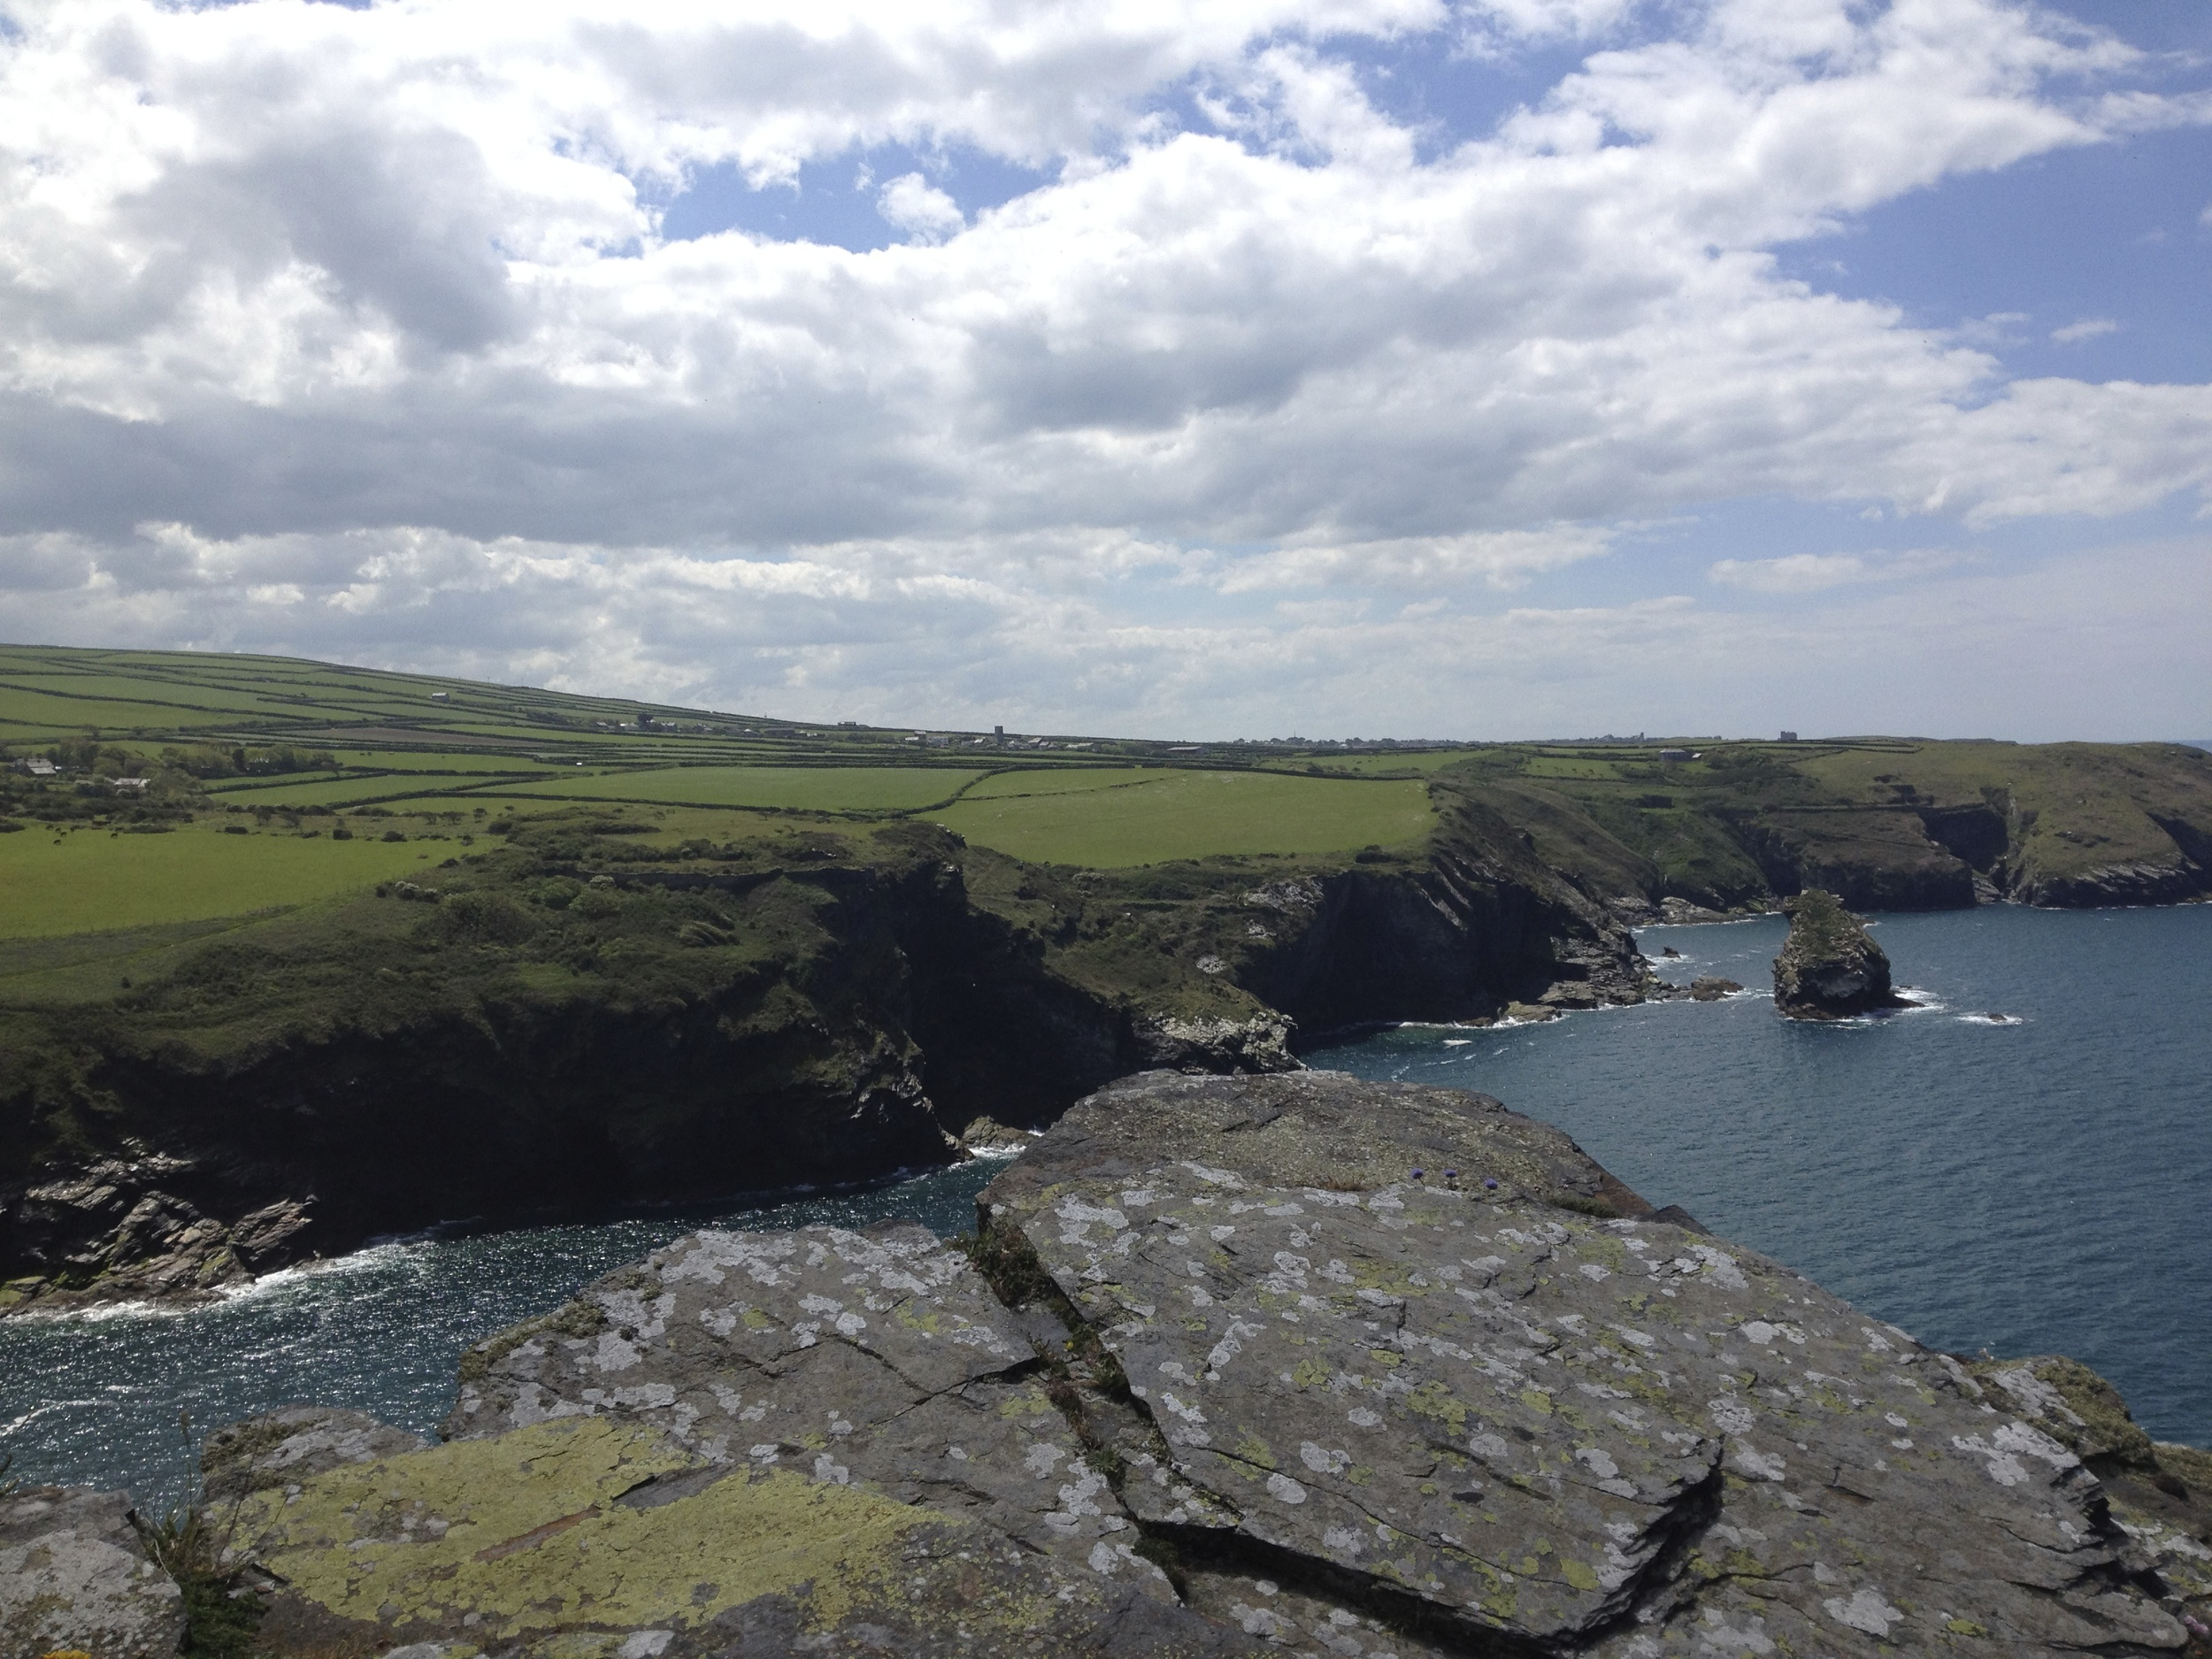 The coast at Boscastle